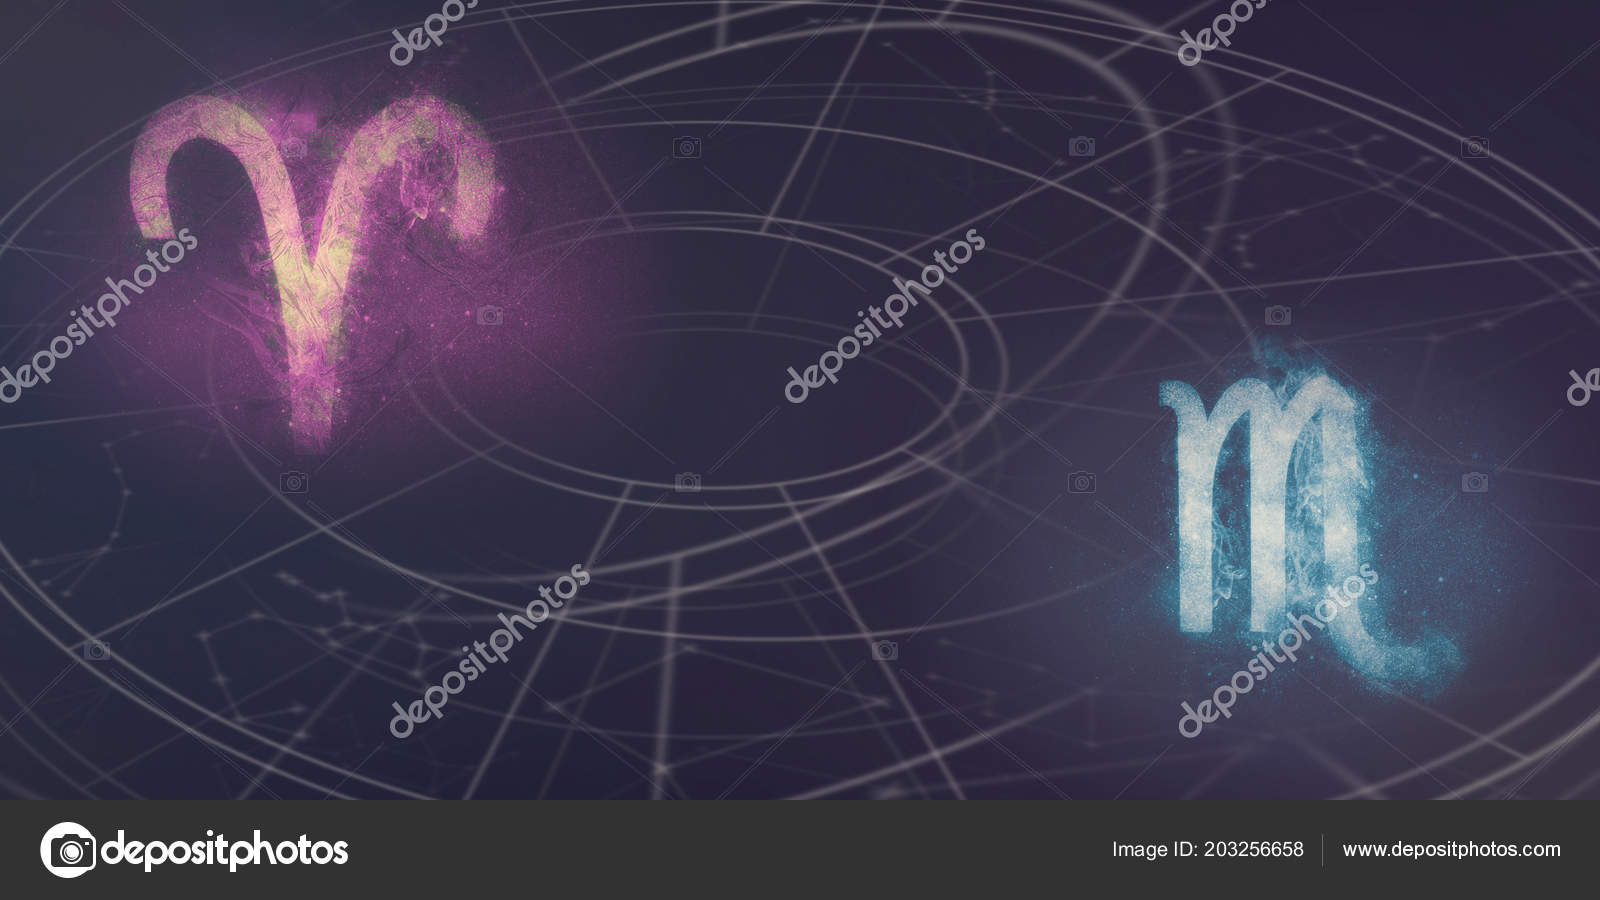 Aries and Scorpio horoscope signs compatibility. Night sky Abstract background.– stock image